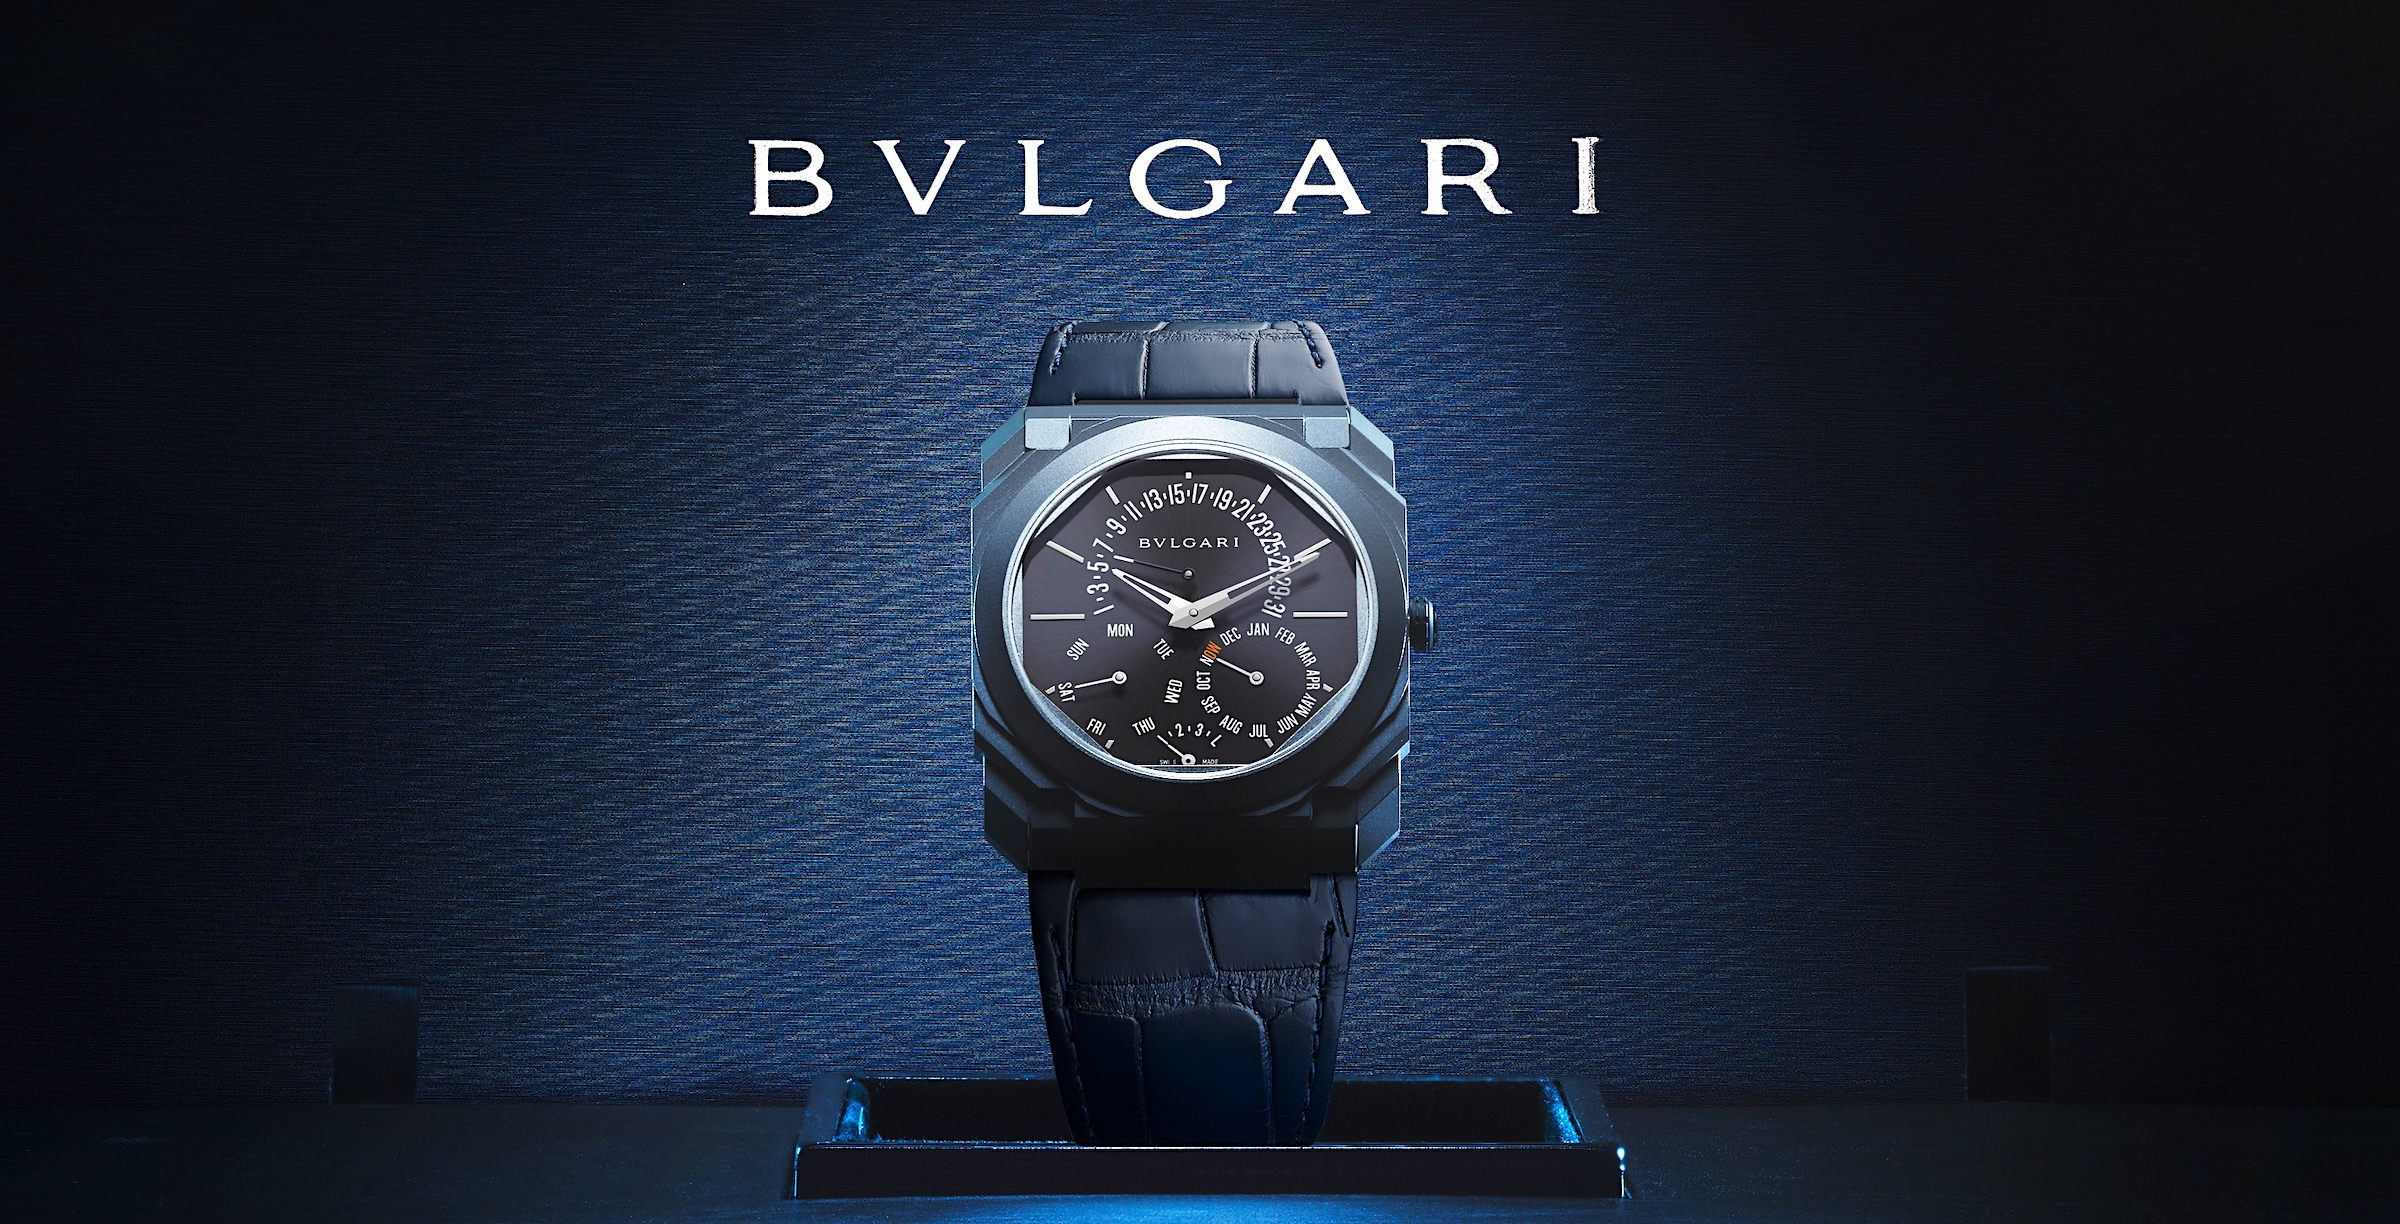 Bvlgari Octo Finissimo Perpetual Calendar Tantalum Only Watch 2021 - cover